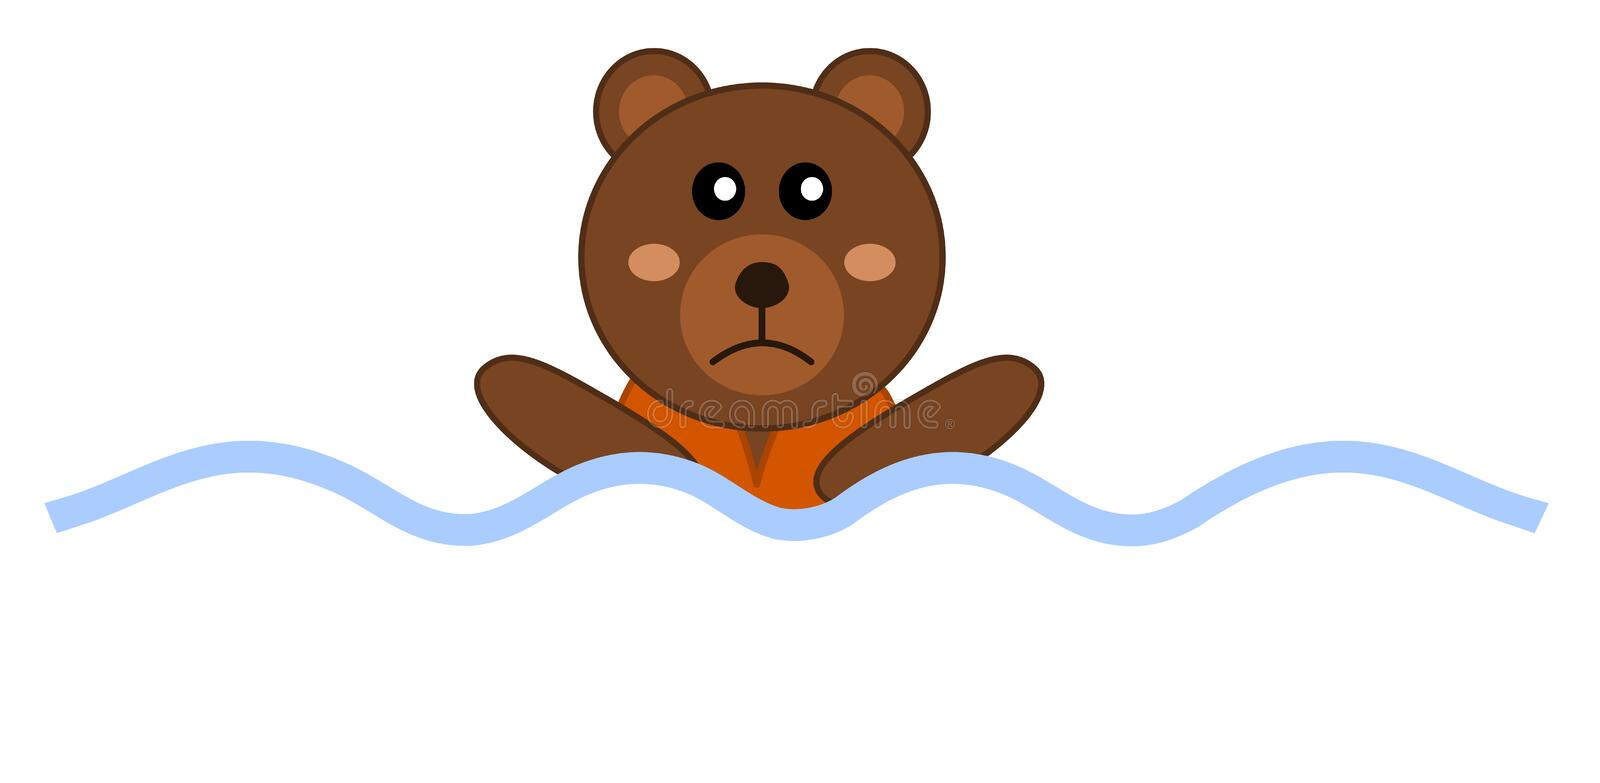 Designing drowning with a teddy bear vector illustration